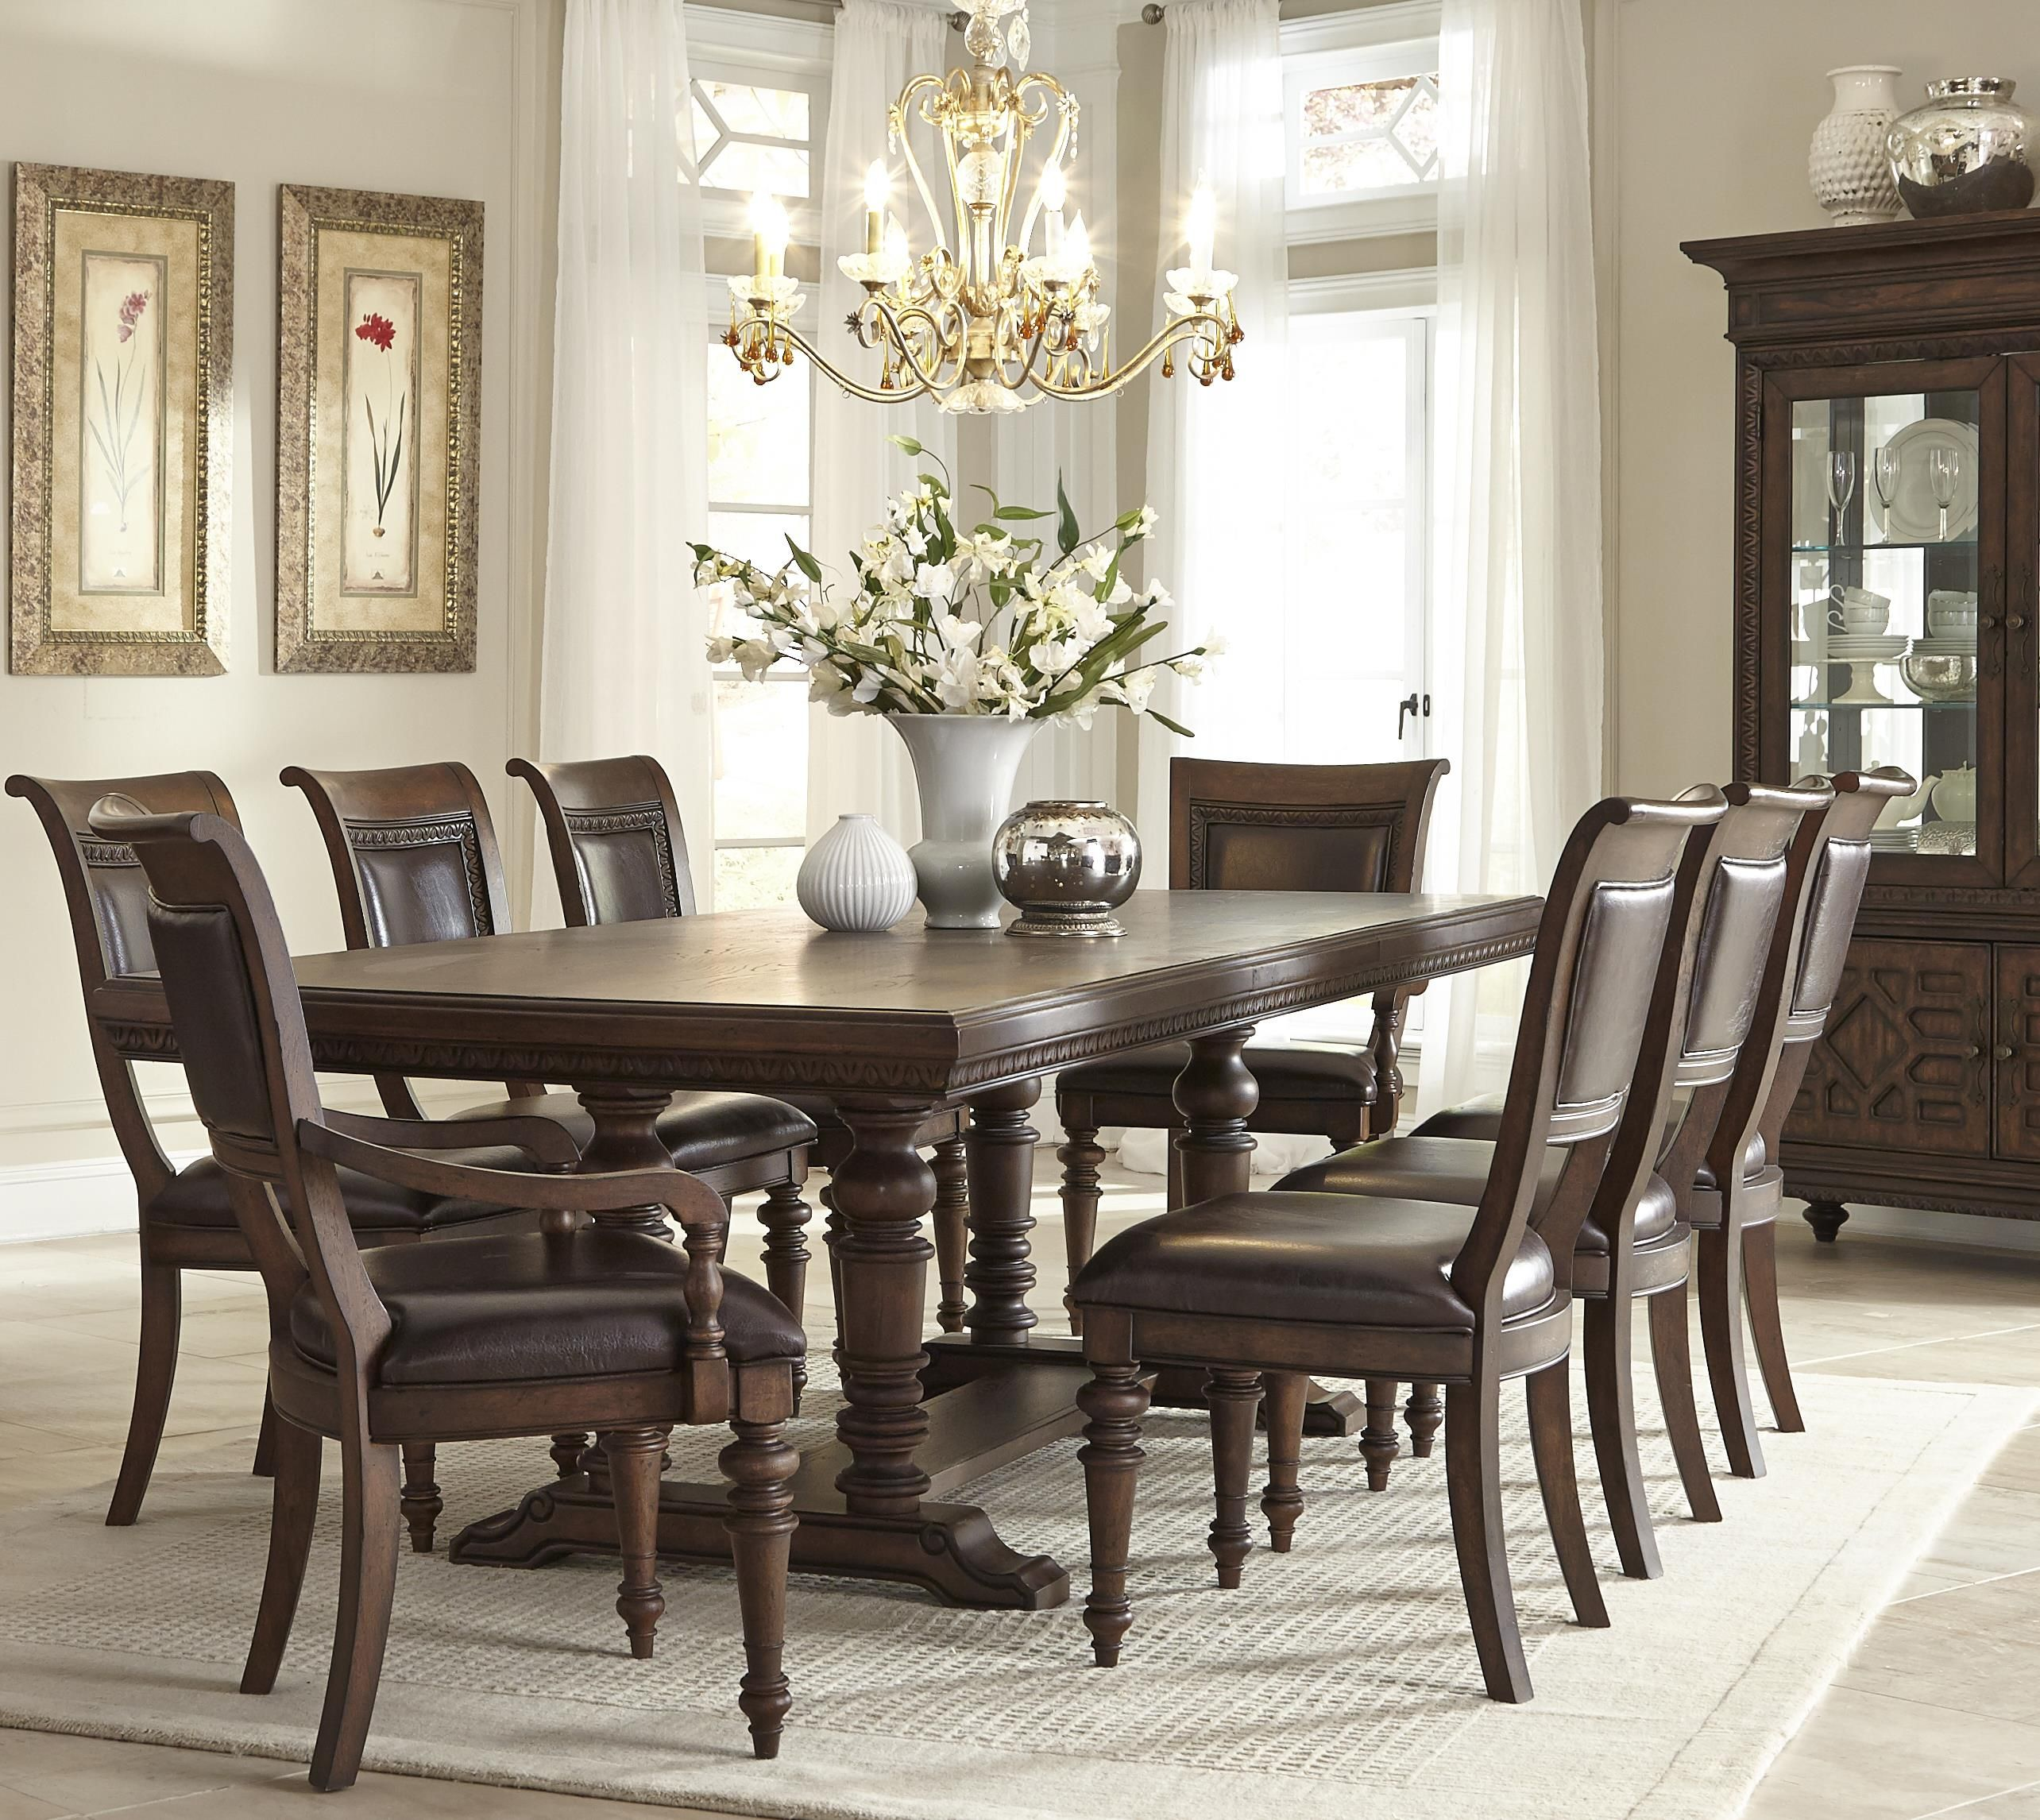 palencia rectangular trestle dining table with 2